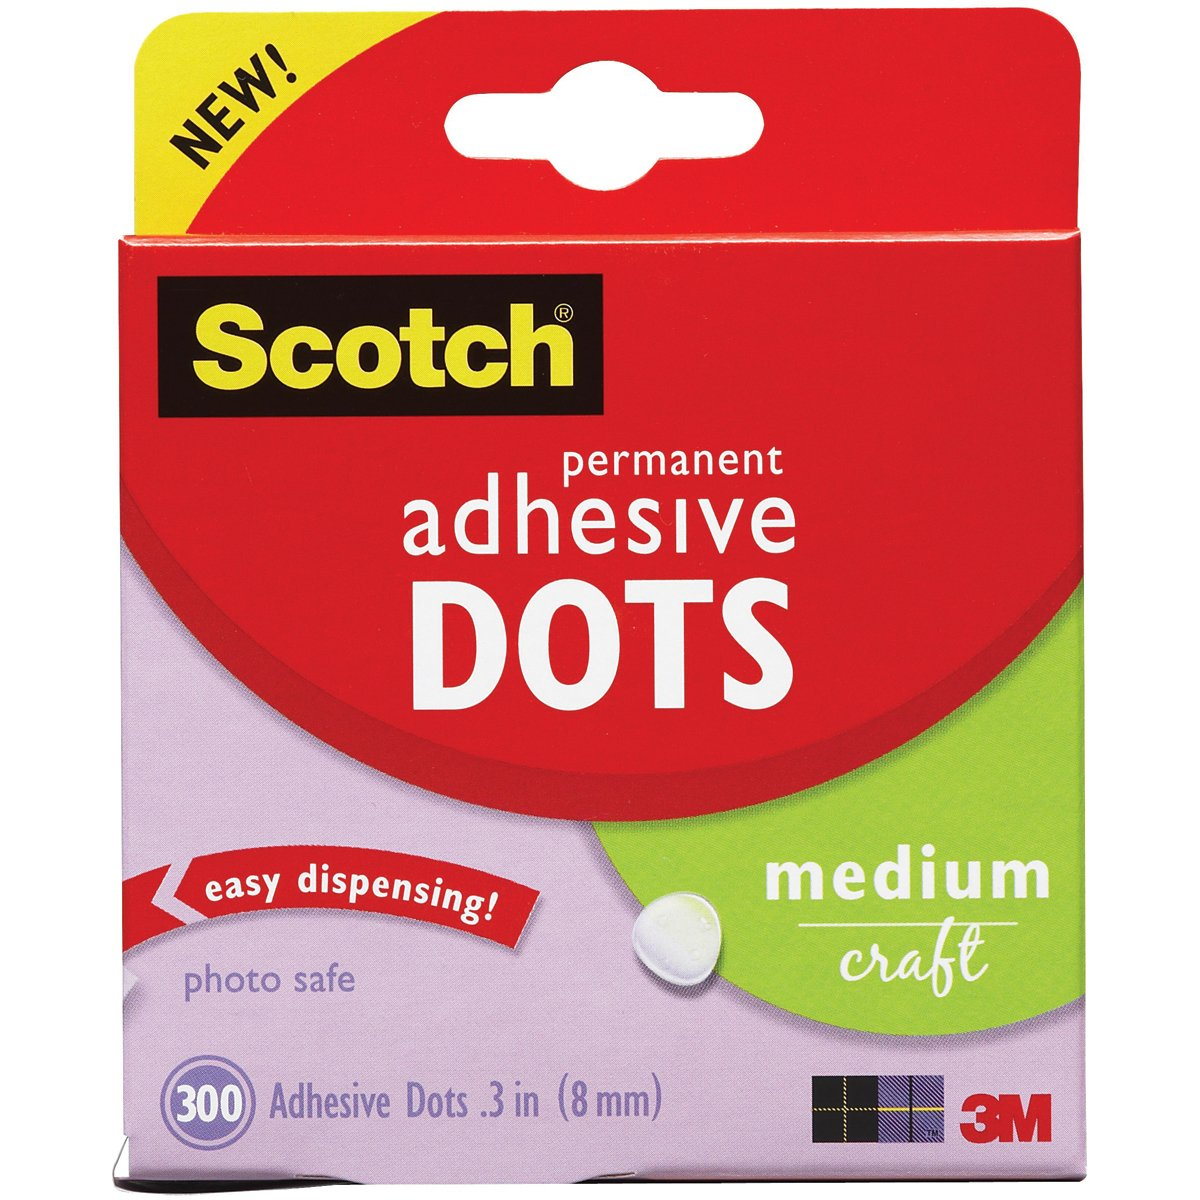 Scotch 010-300M Permanent Adhesive Glue Dots - 8 mm, Pack of 300 3M